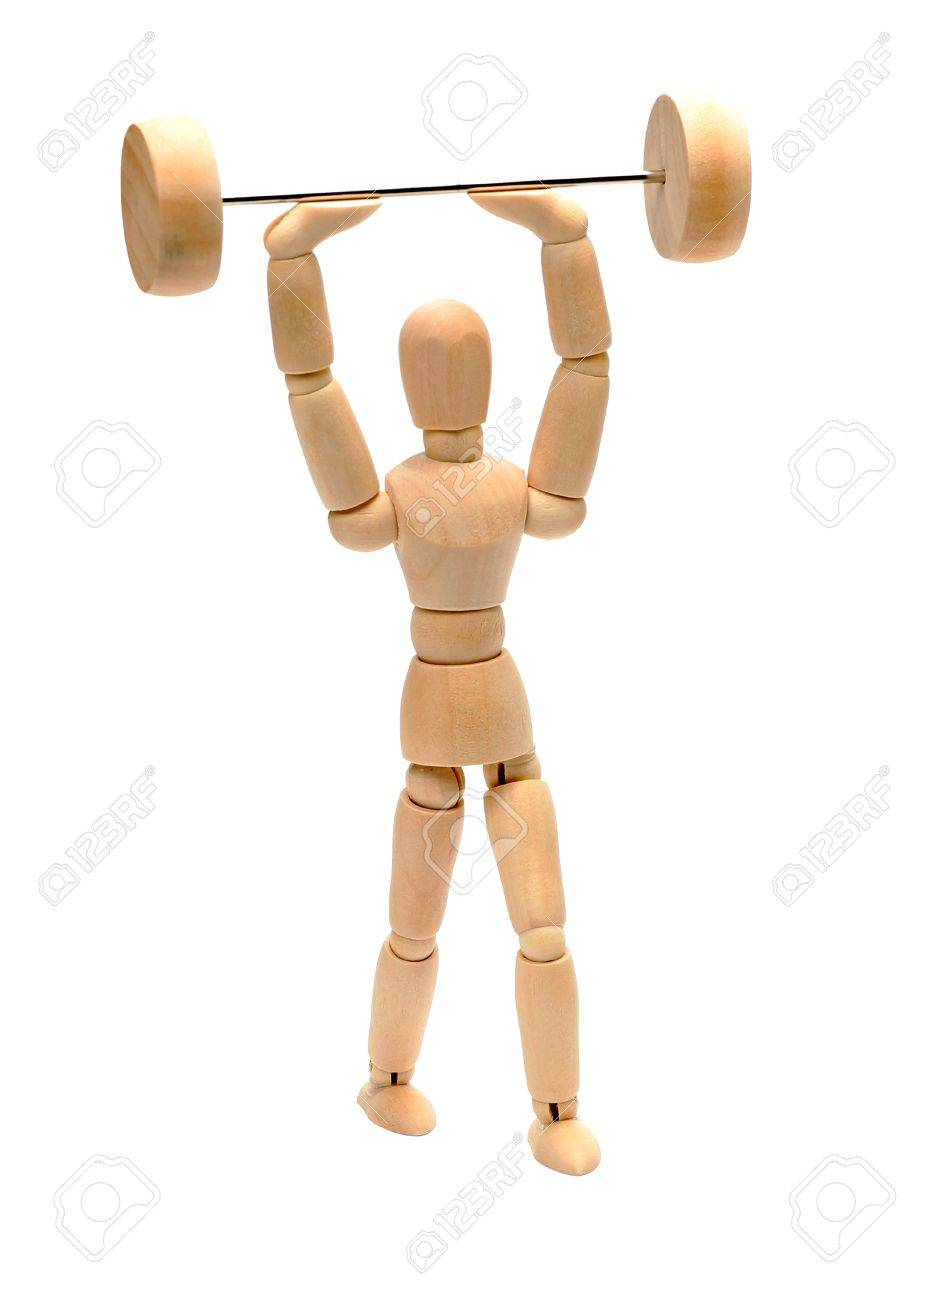 wooden doll doing weight lifting Stock Photo - 15482745